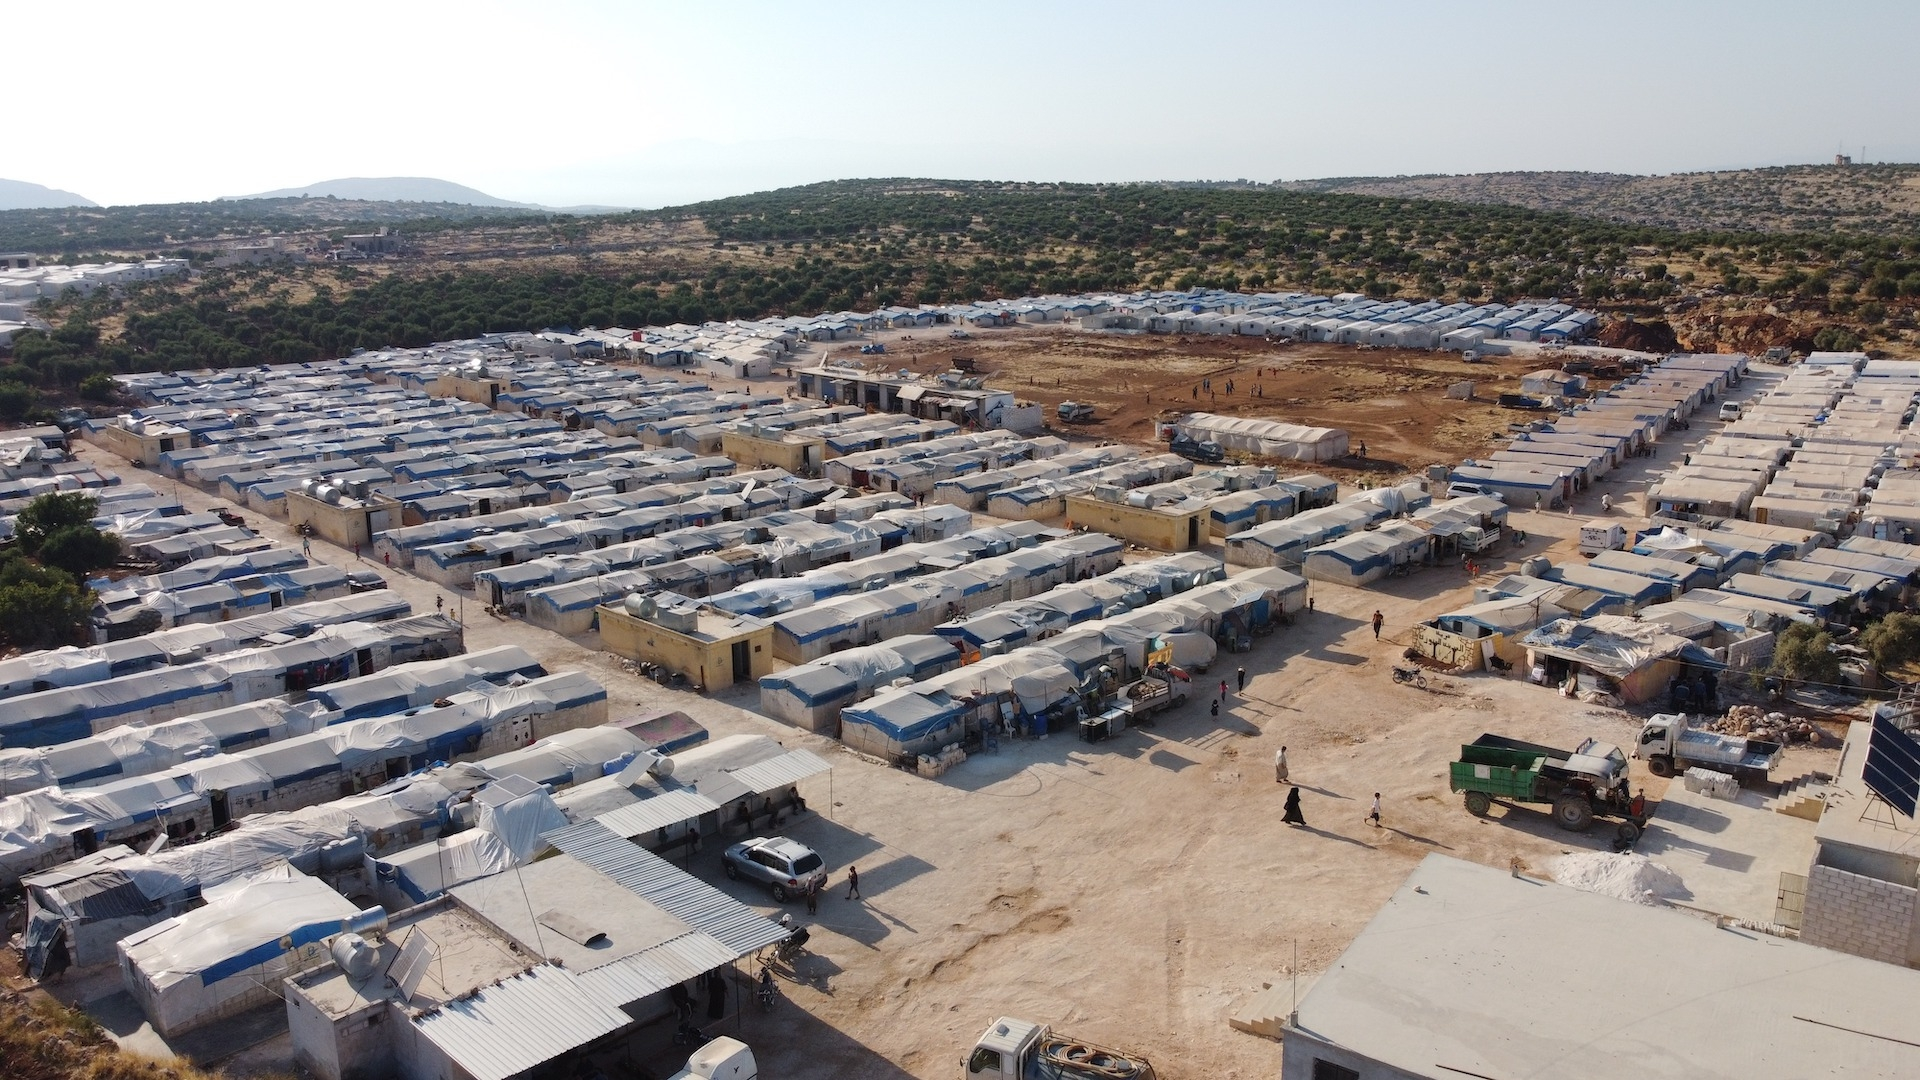 """The """"One Thousand Housing Units"""" project aimed at securing shelter for a thousand of displaced families from Idlib (Molham Volunteering Team)"""